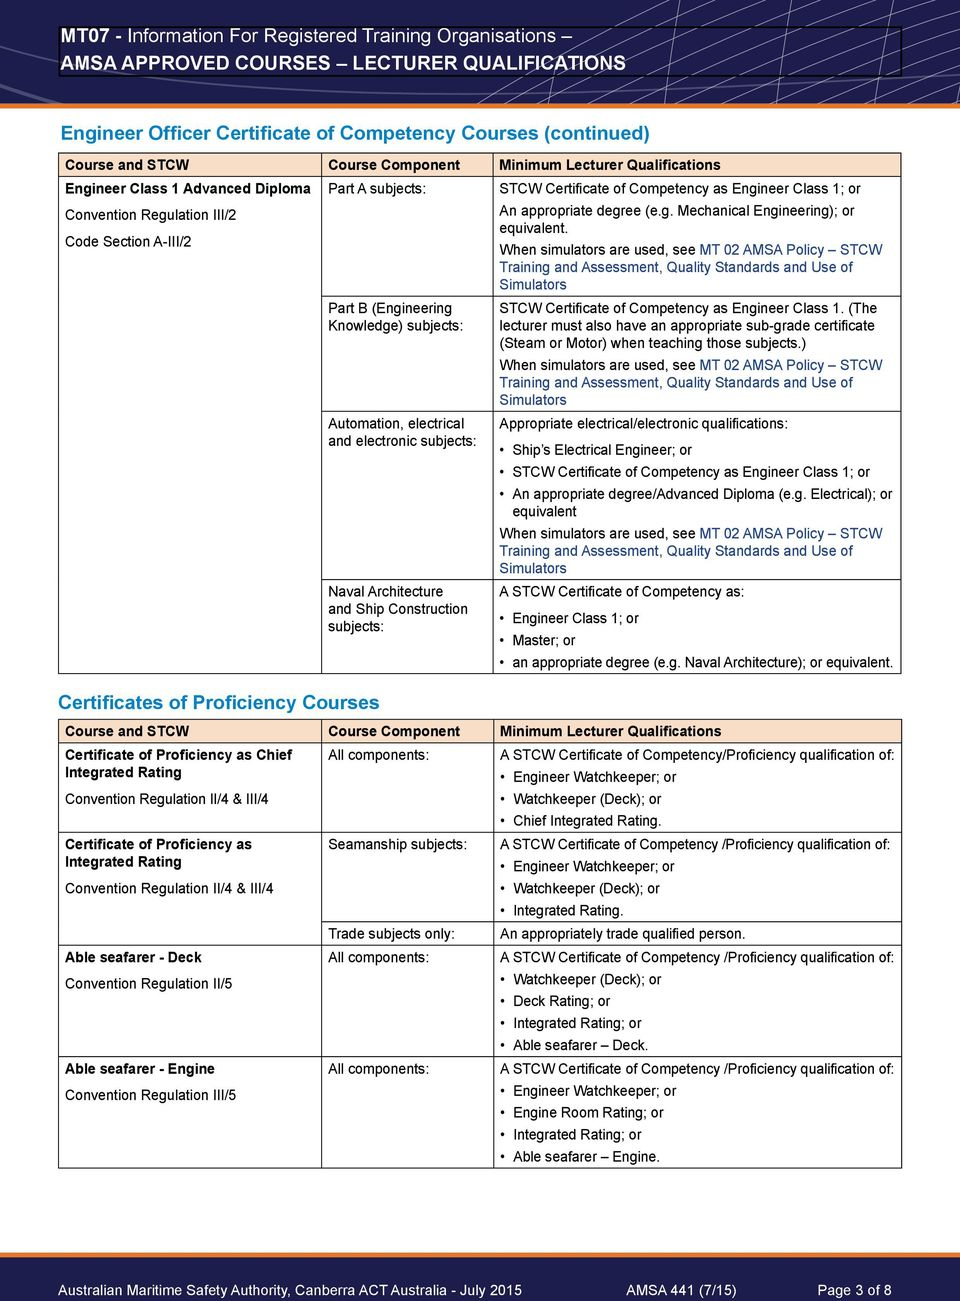 Amsa Approved Courses Lecturer Qualifications Pdf